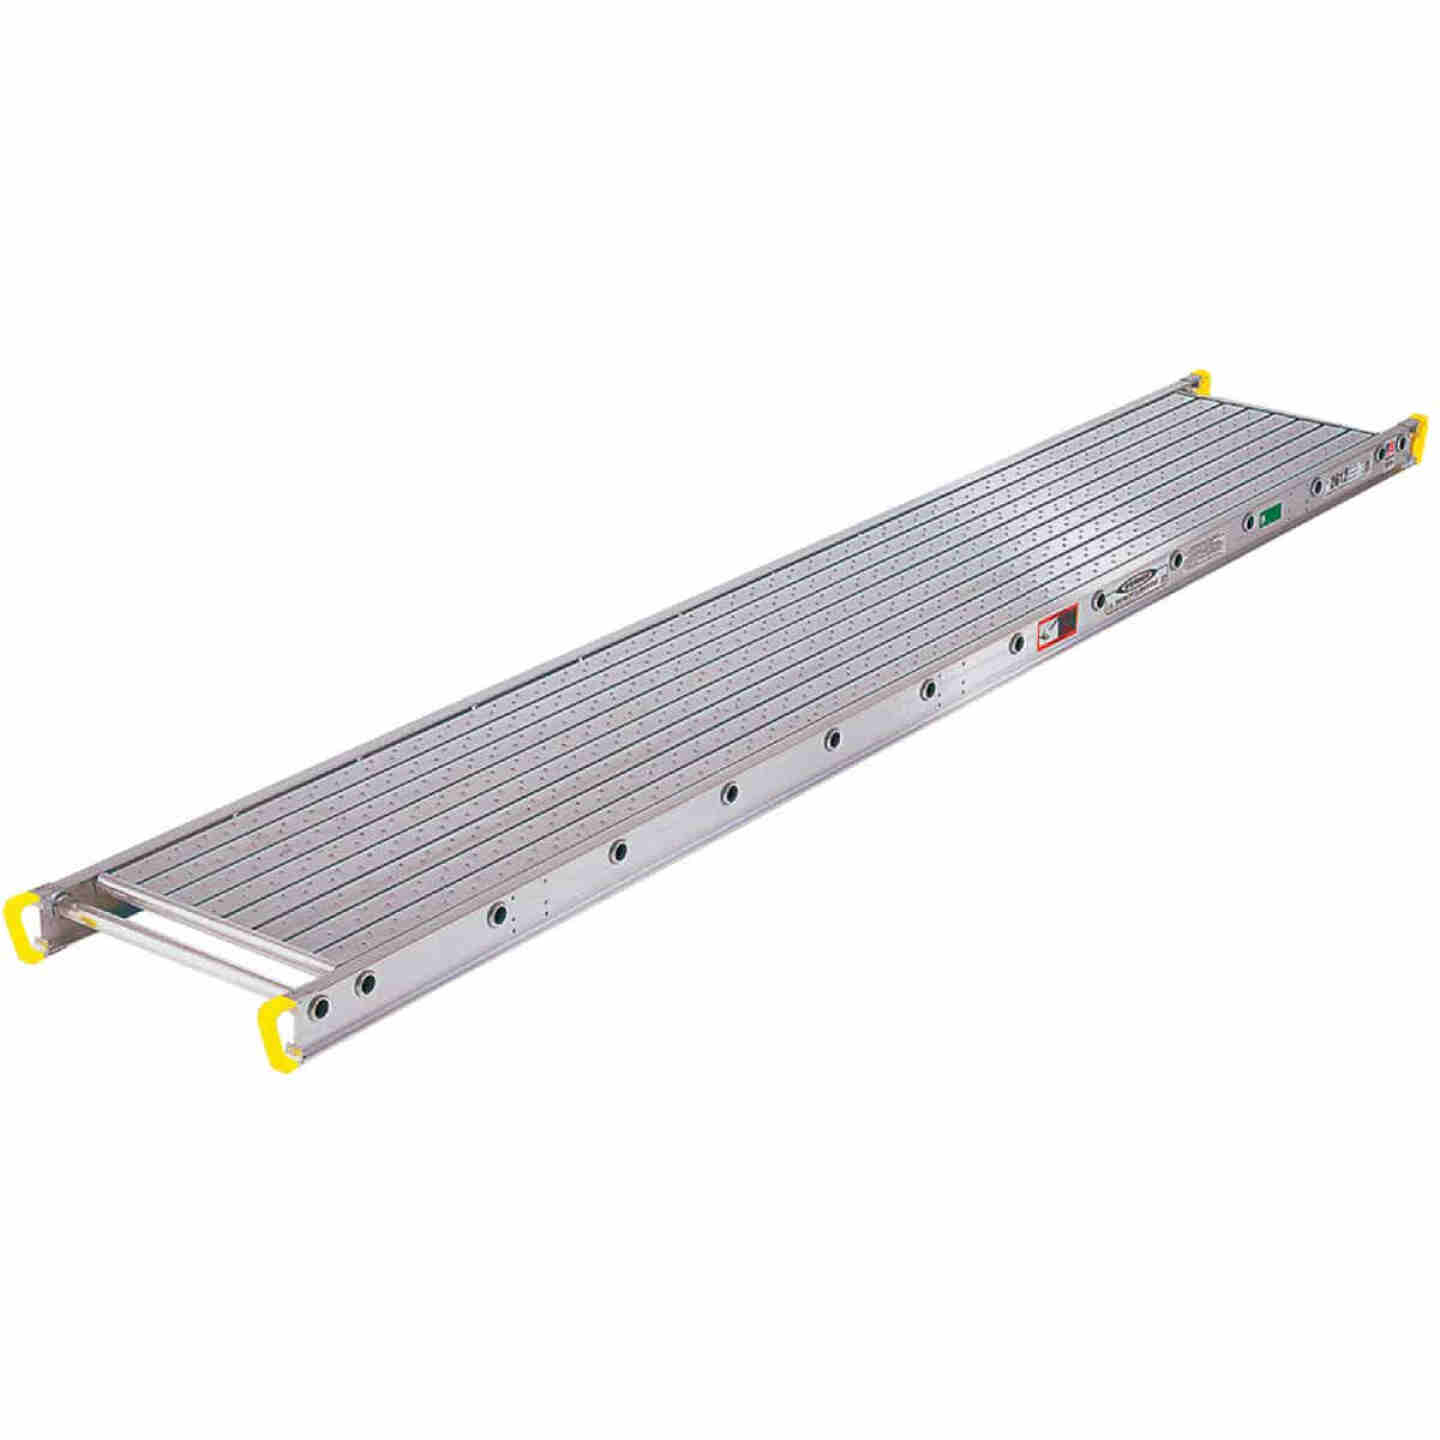 Werner Task-Master 2 Person, 500 LB. Load Capacity 16 Ft. Aluminum Stage Extension Plank Image 1